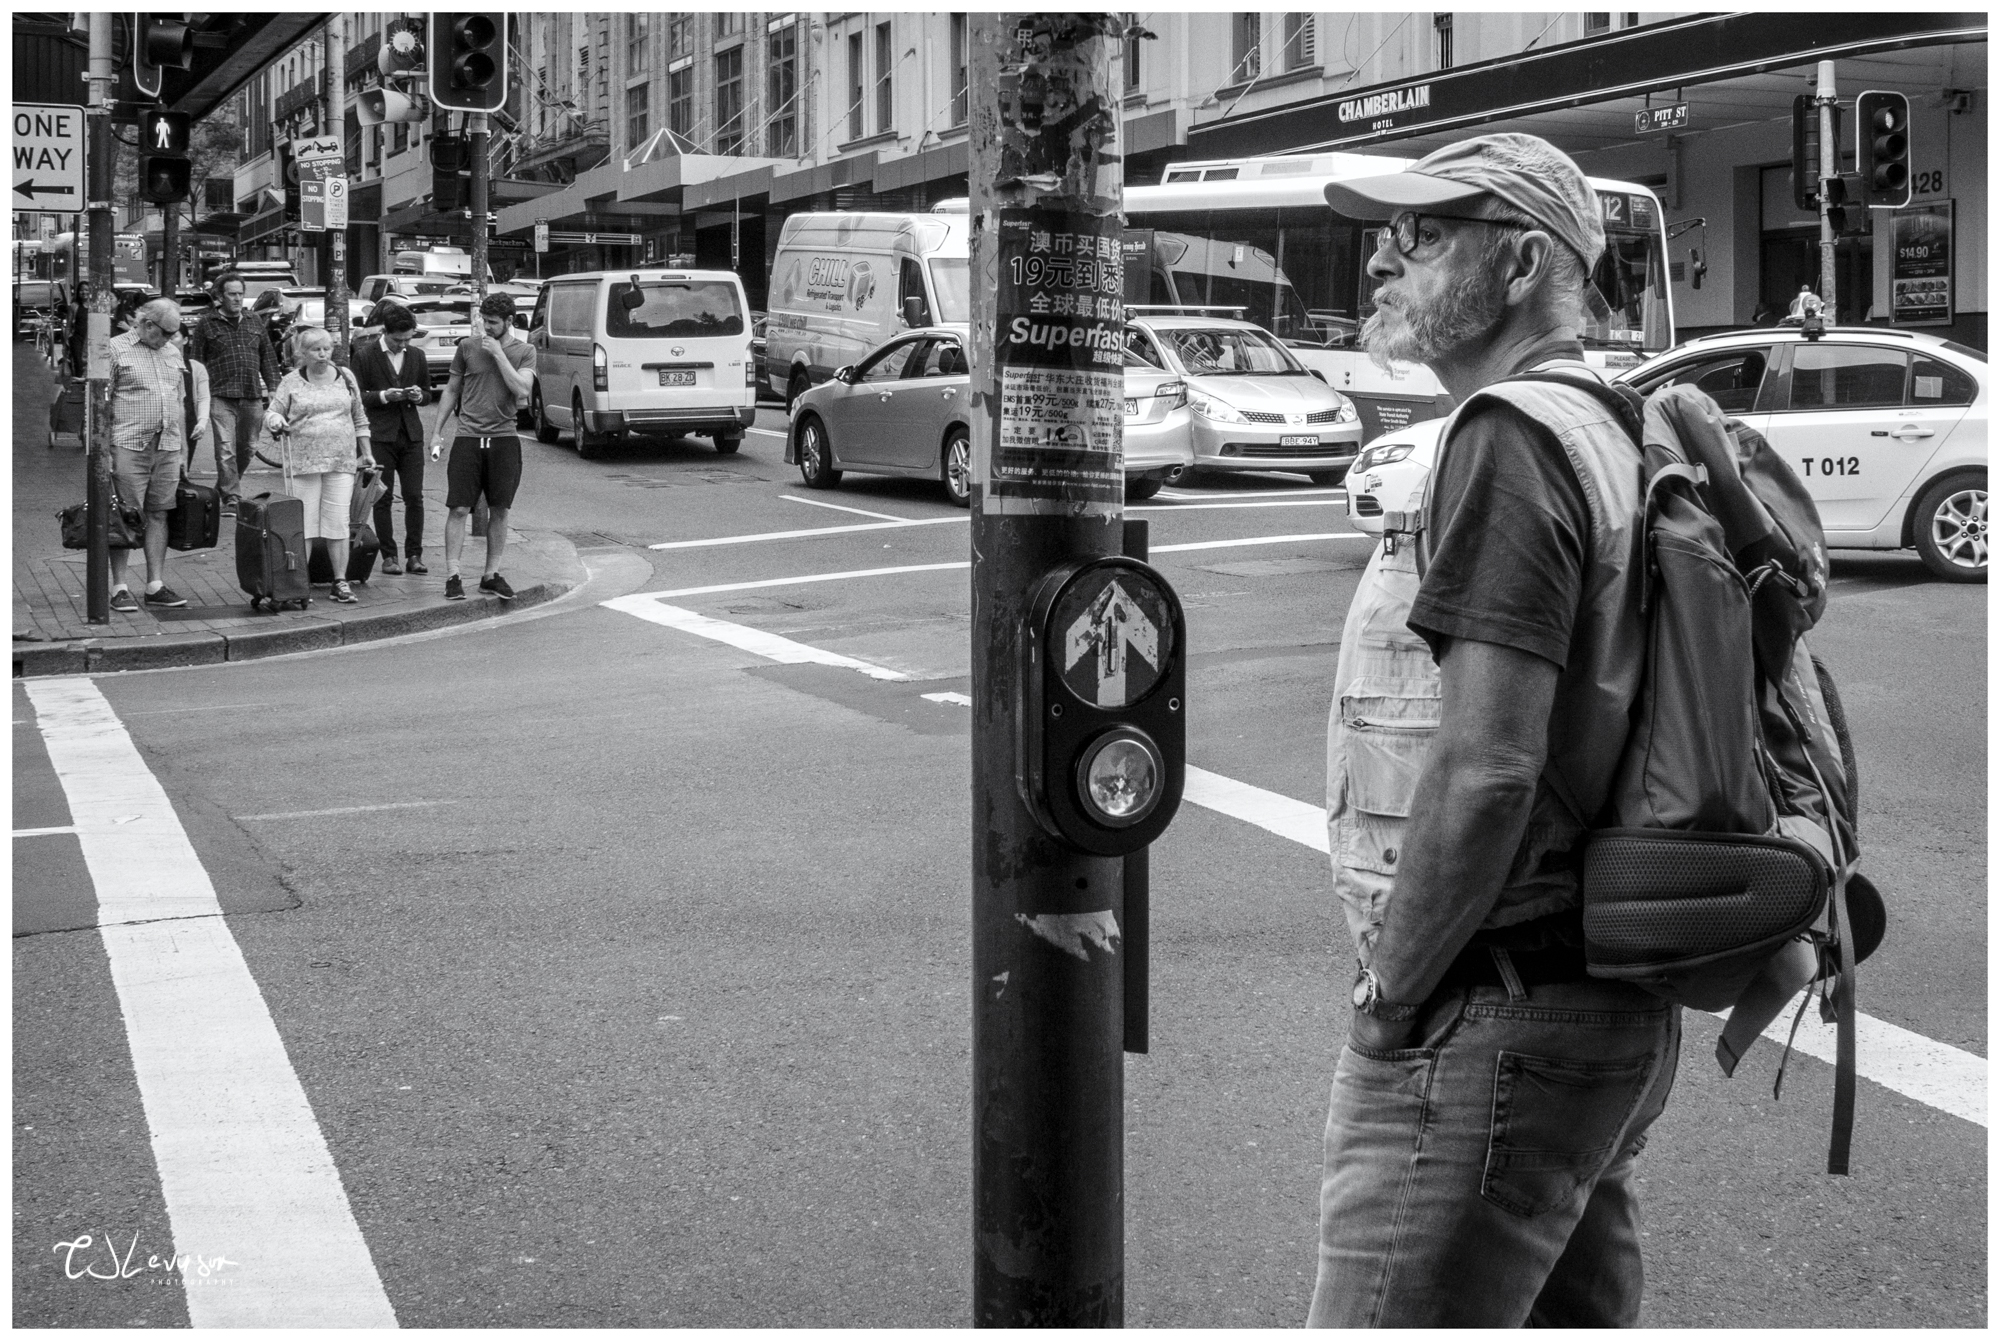 Pedestrian on Pitt Street